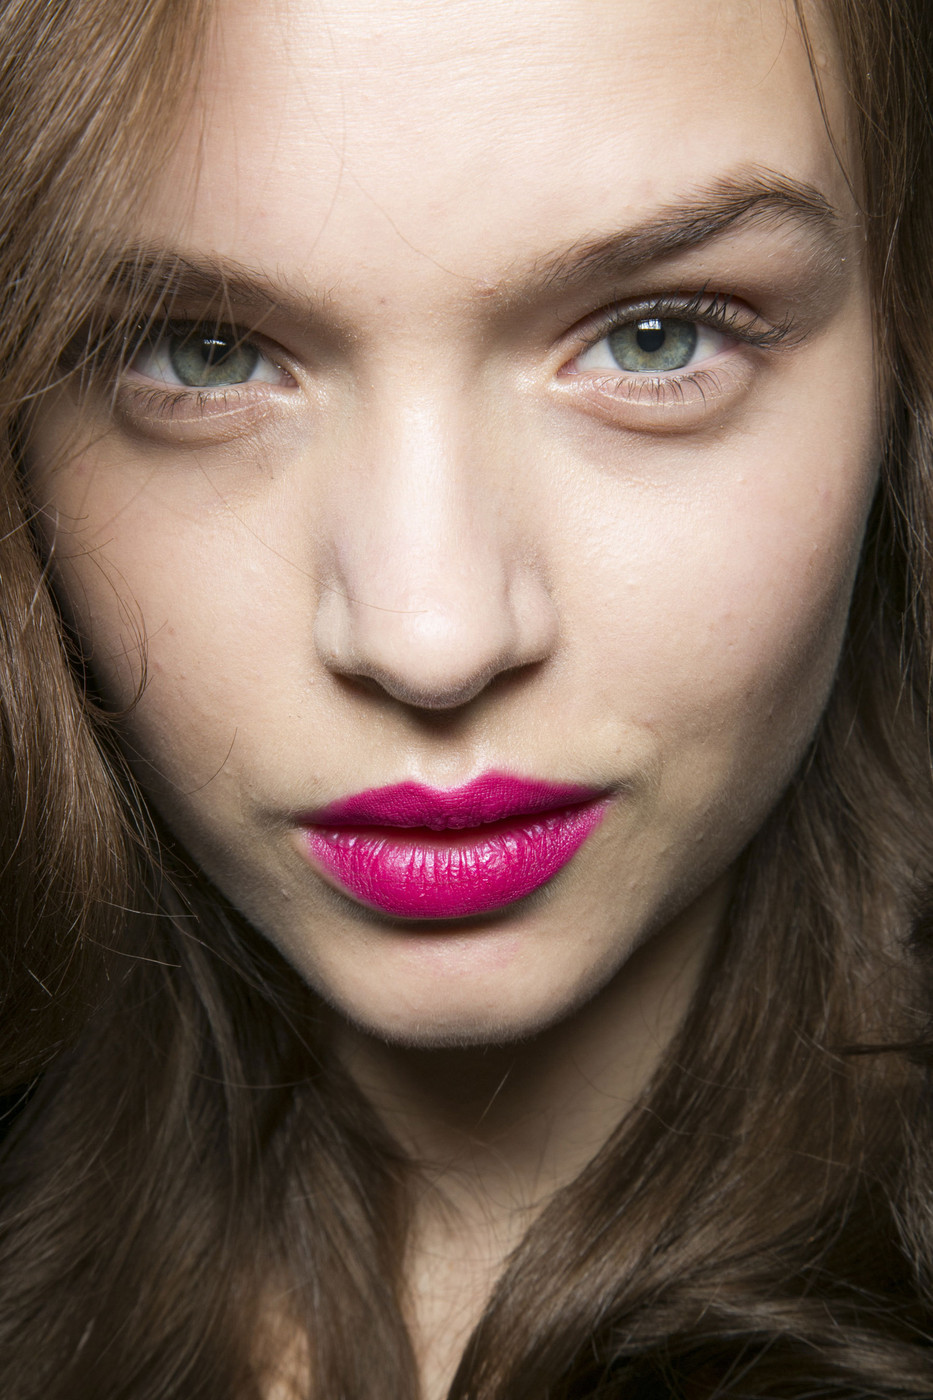 Josephine Skriver backstage at Diane von Furstenberg Fall Winter 2013 | NFYW